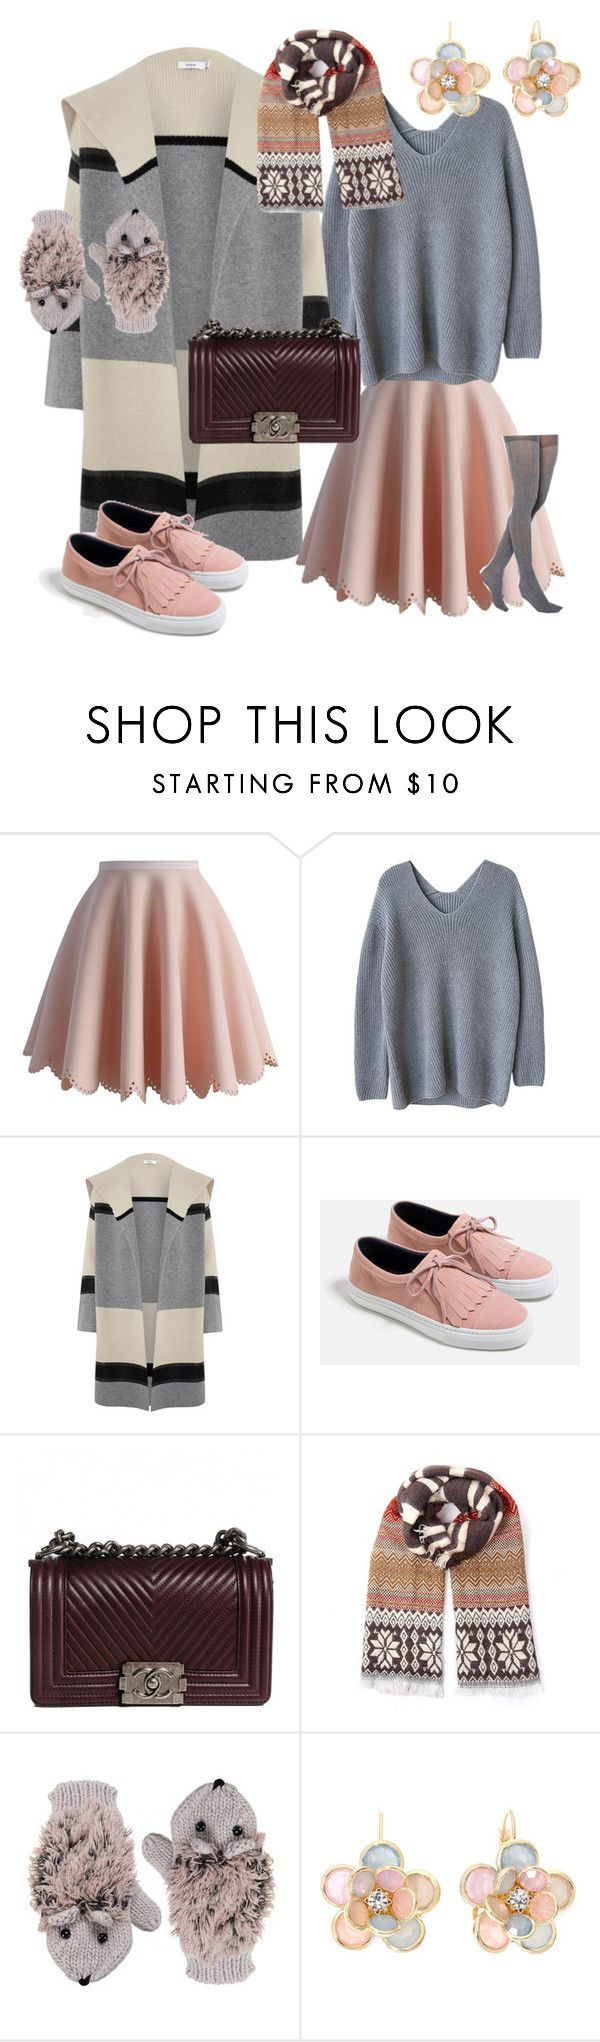 """""""подростки"""" by marjanavoroncova ❤ liked on Polyvore featuring Chicwish, Vince, Zara, Chanel, Mixit and Gipsy"""